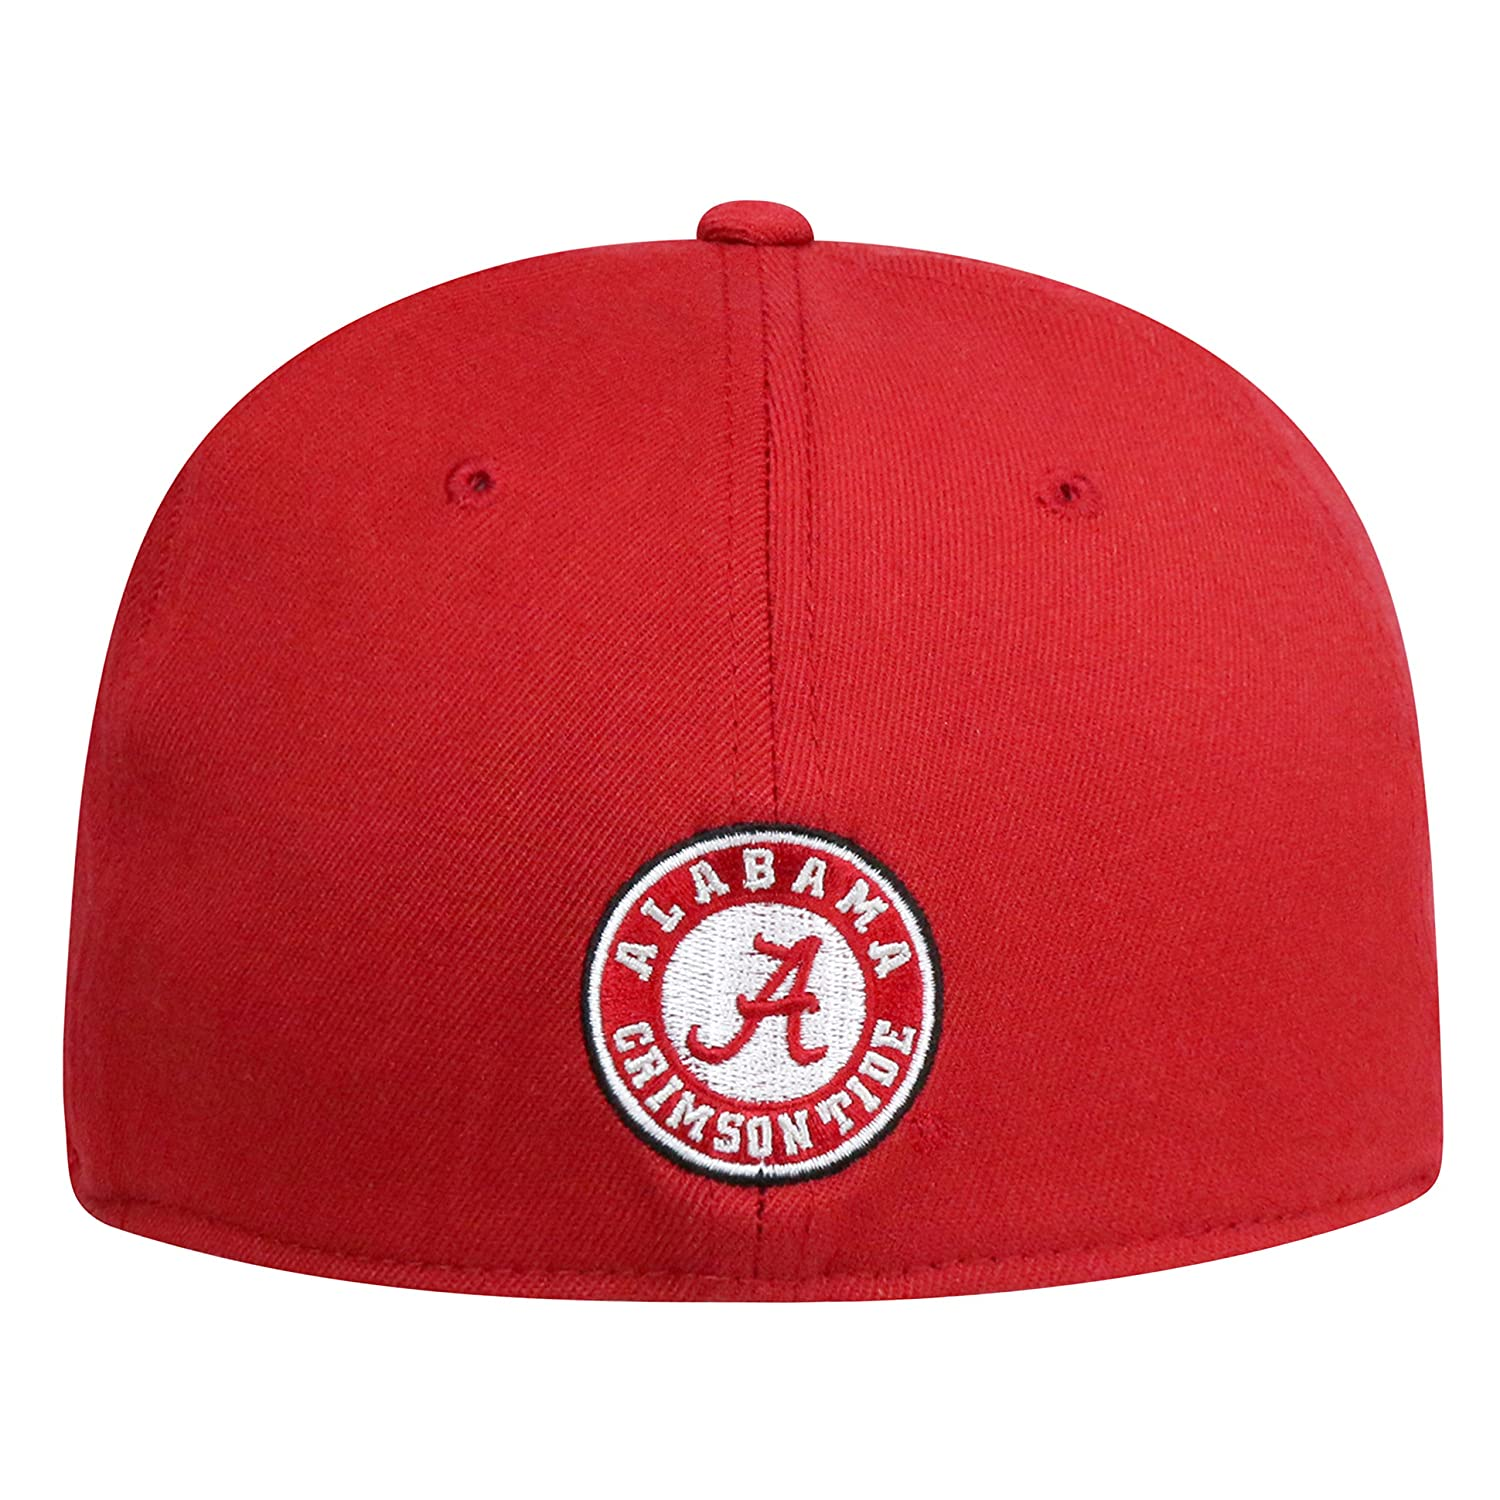 new style 1acec b60c7 Amazon.com   Top of the World NCAA-Premium Collection-One-Fit-Memory Fit-Hat  Cap   Clothing